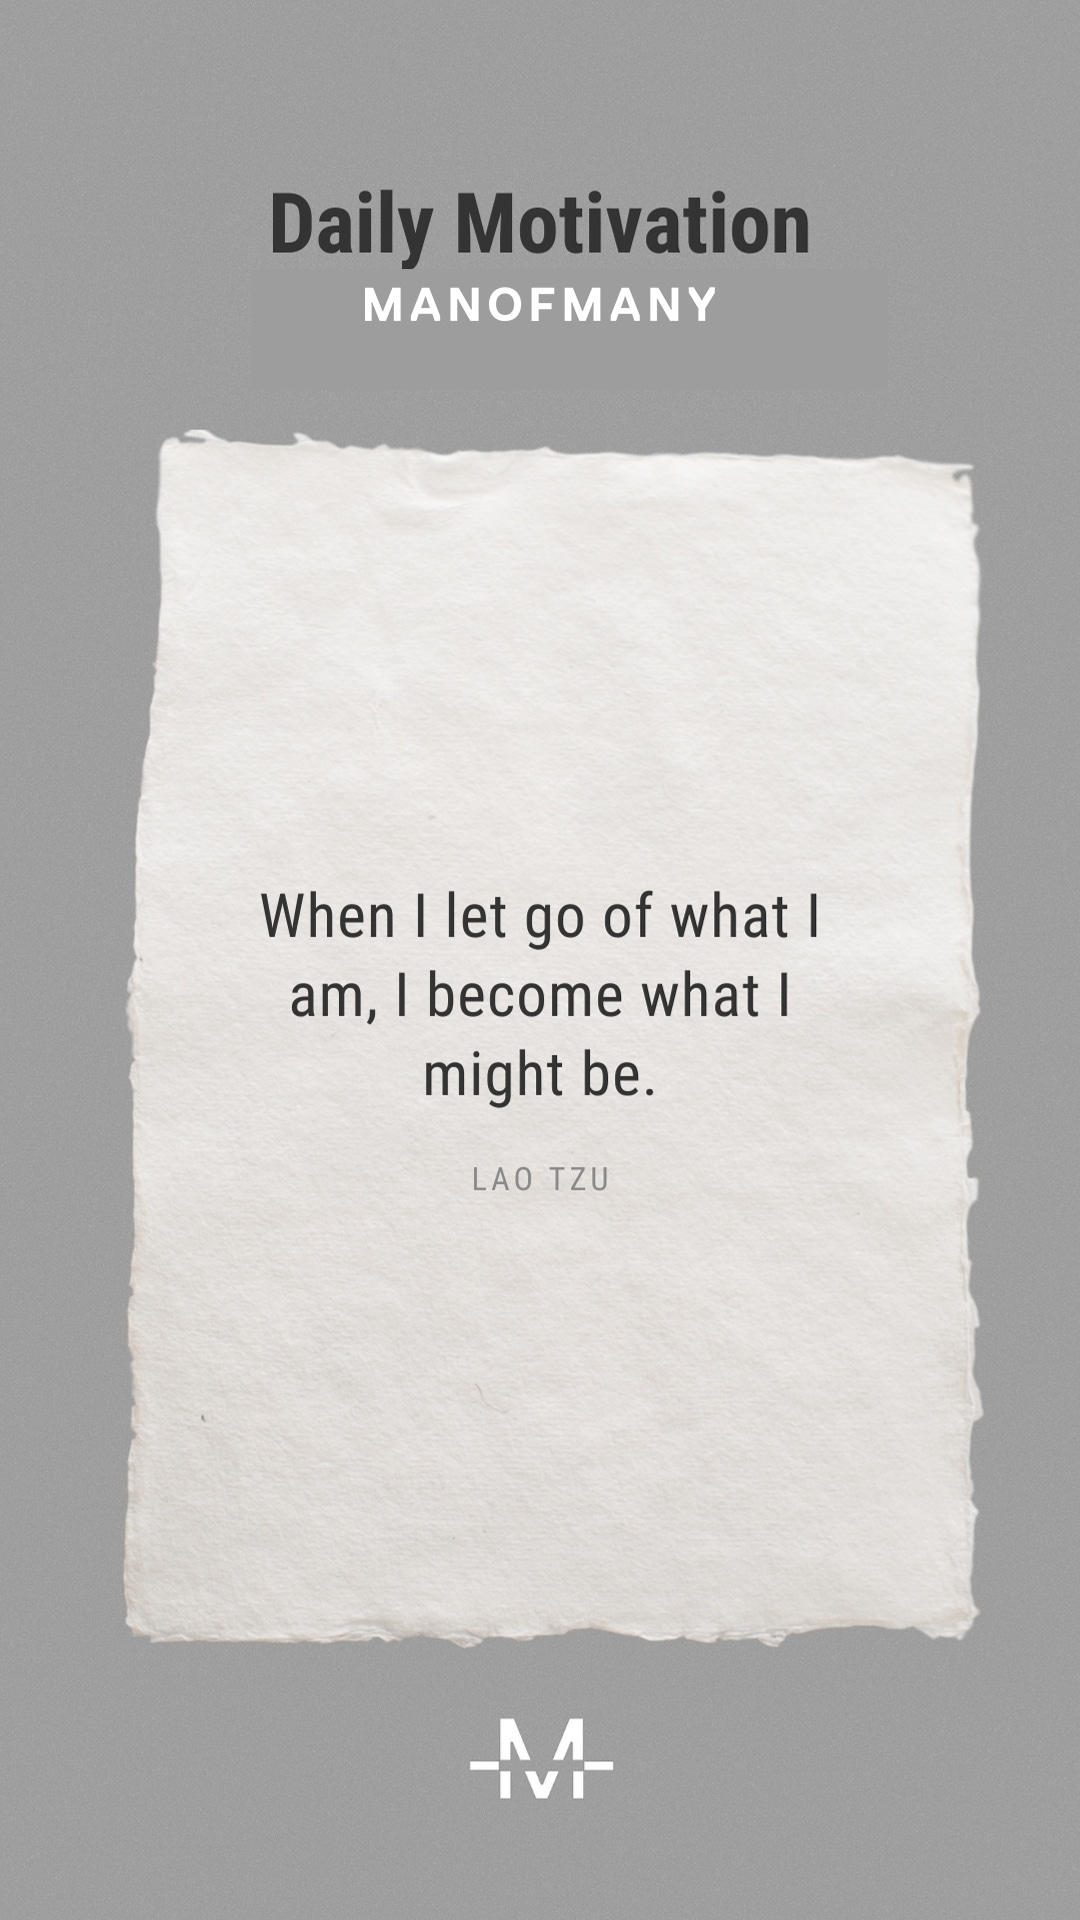 When I let go of what I am, I become what I might be. –Lao Tzu quote